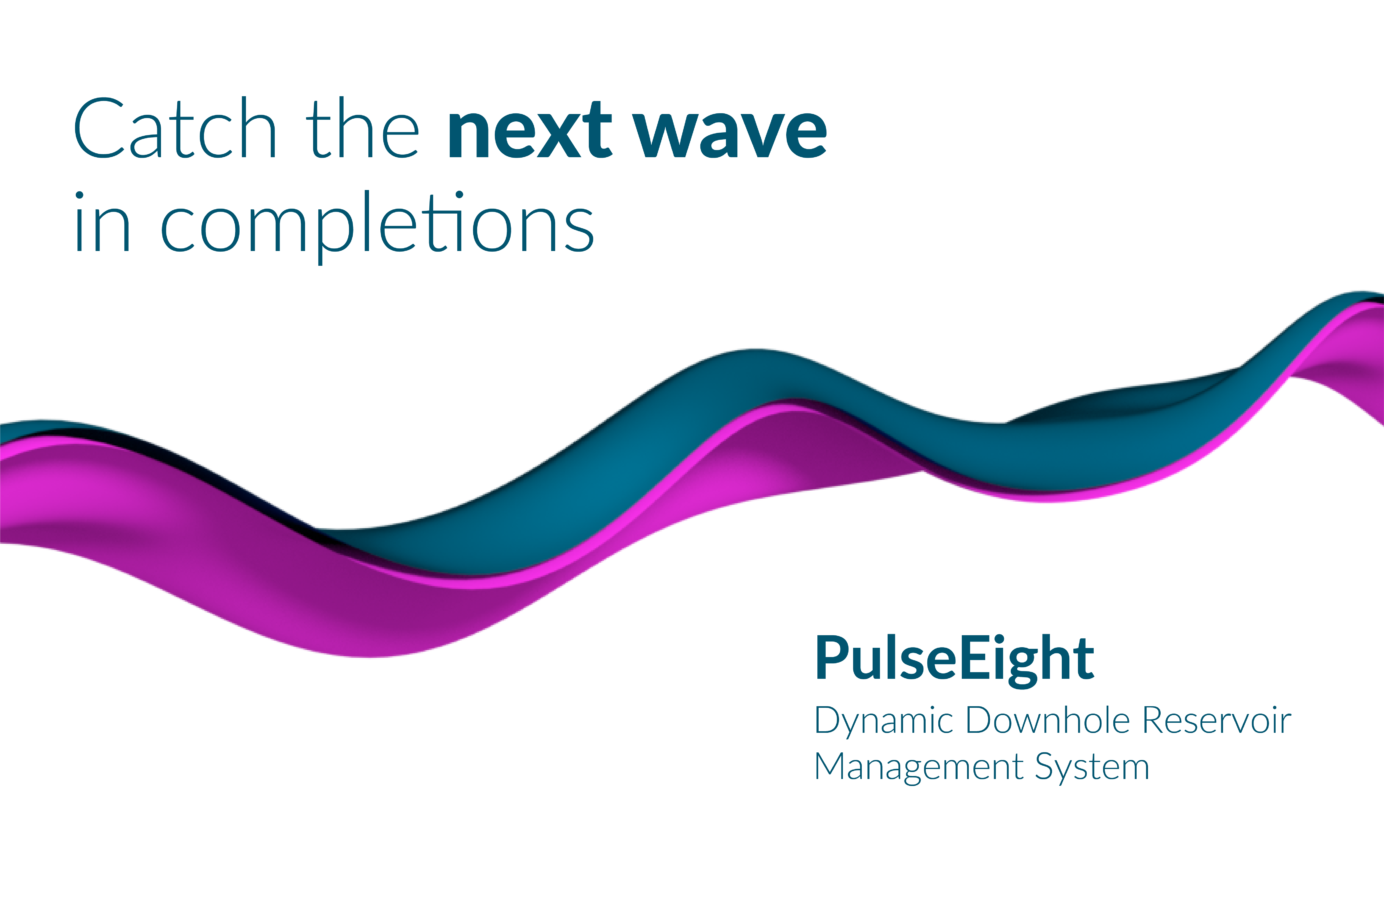 PulseEight catch the next wave in completions